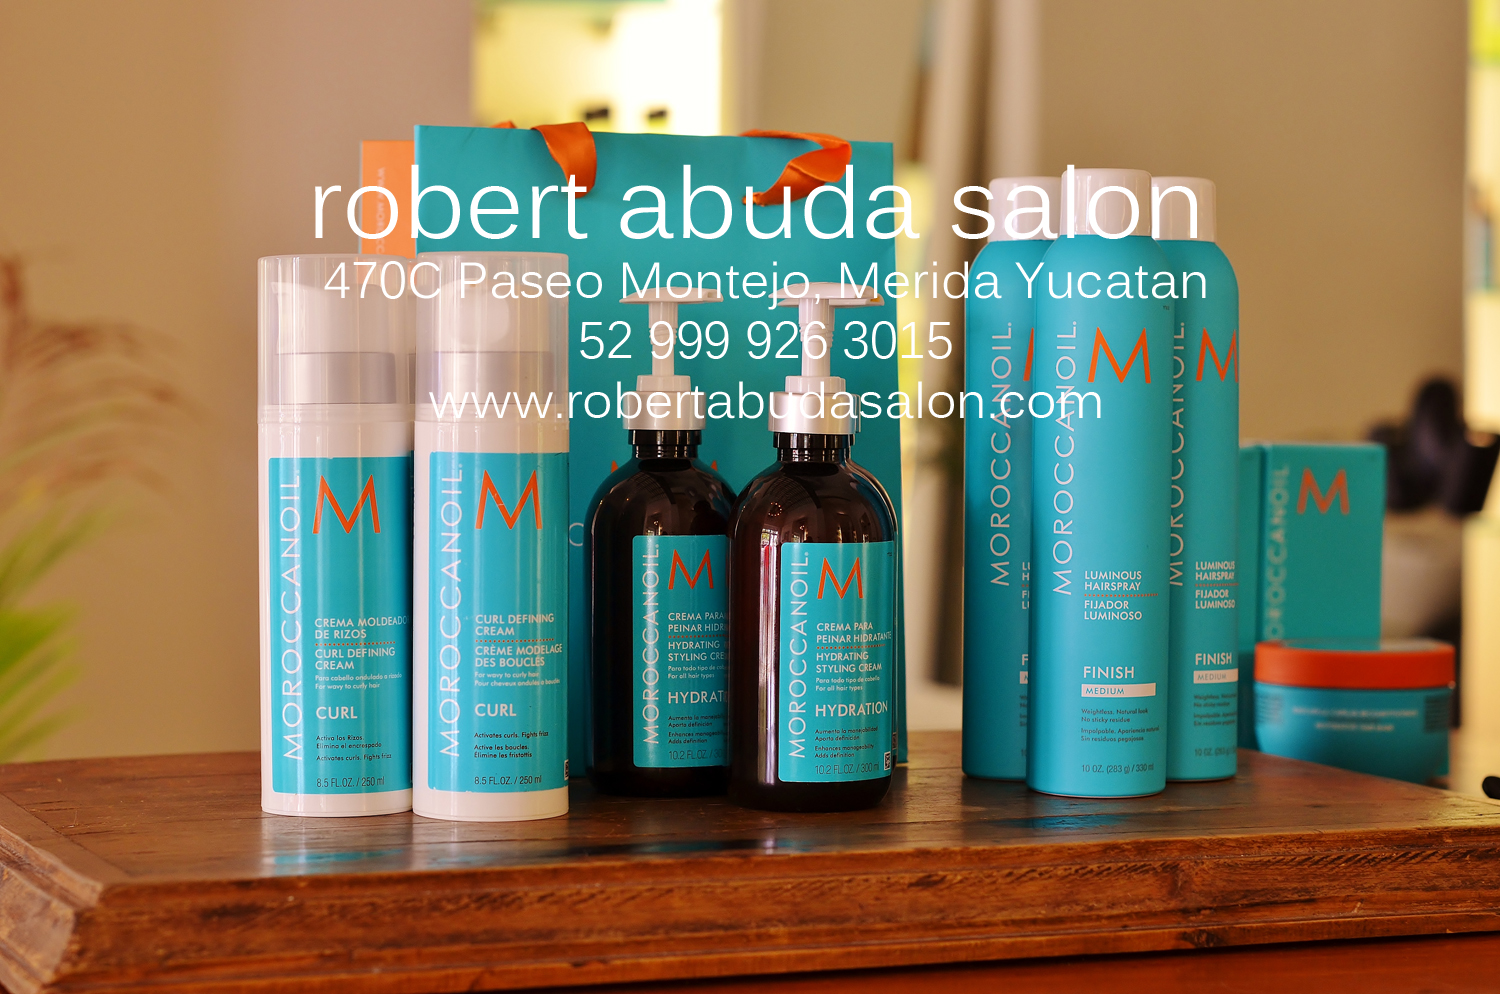 moroccan oil salon de belleza merida 12